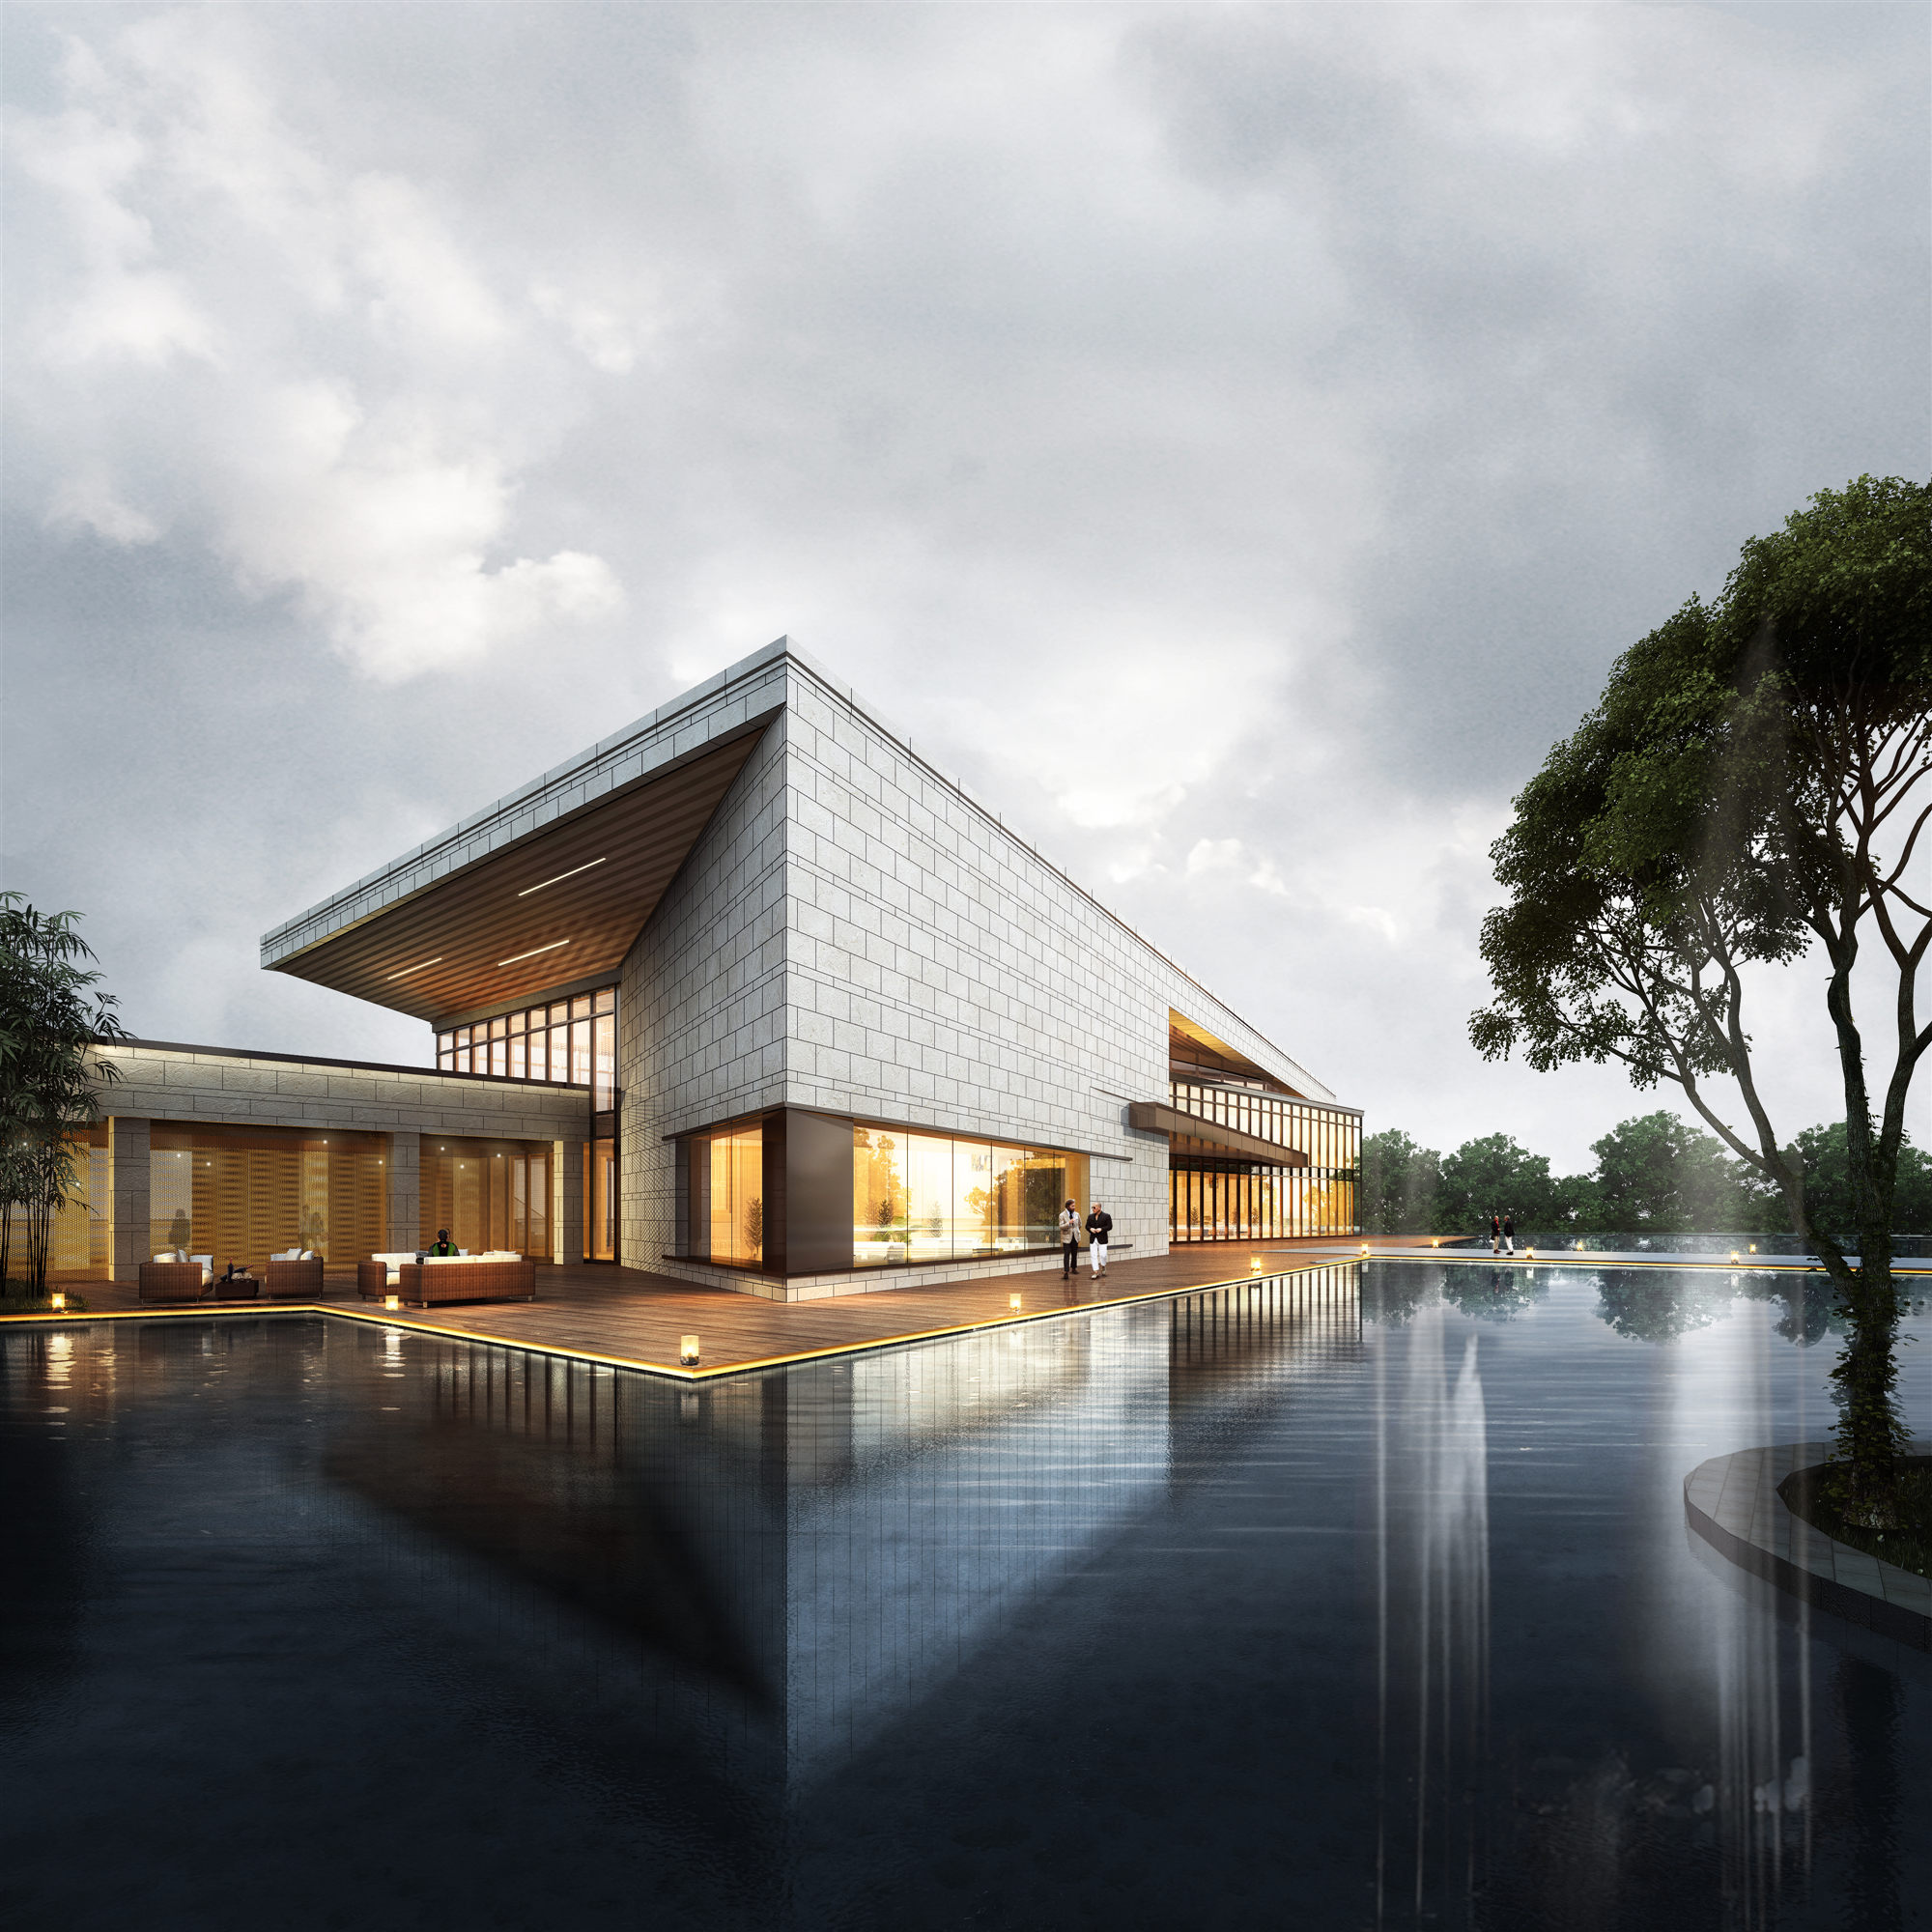 Rendering-The south entrance Lacime Architects}